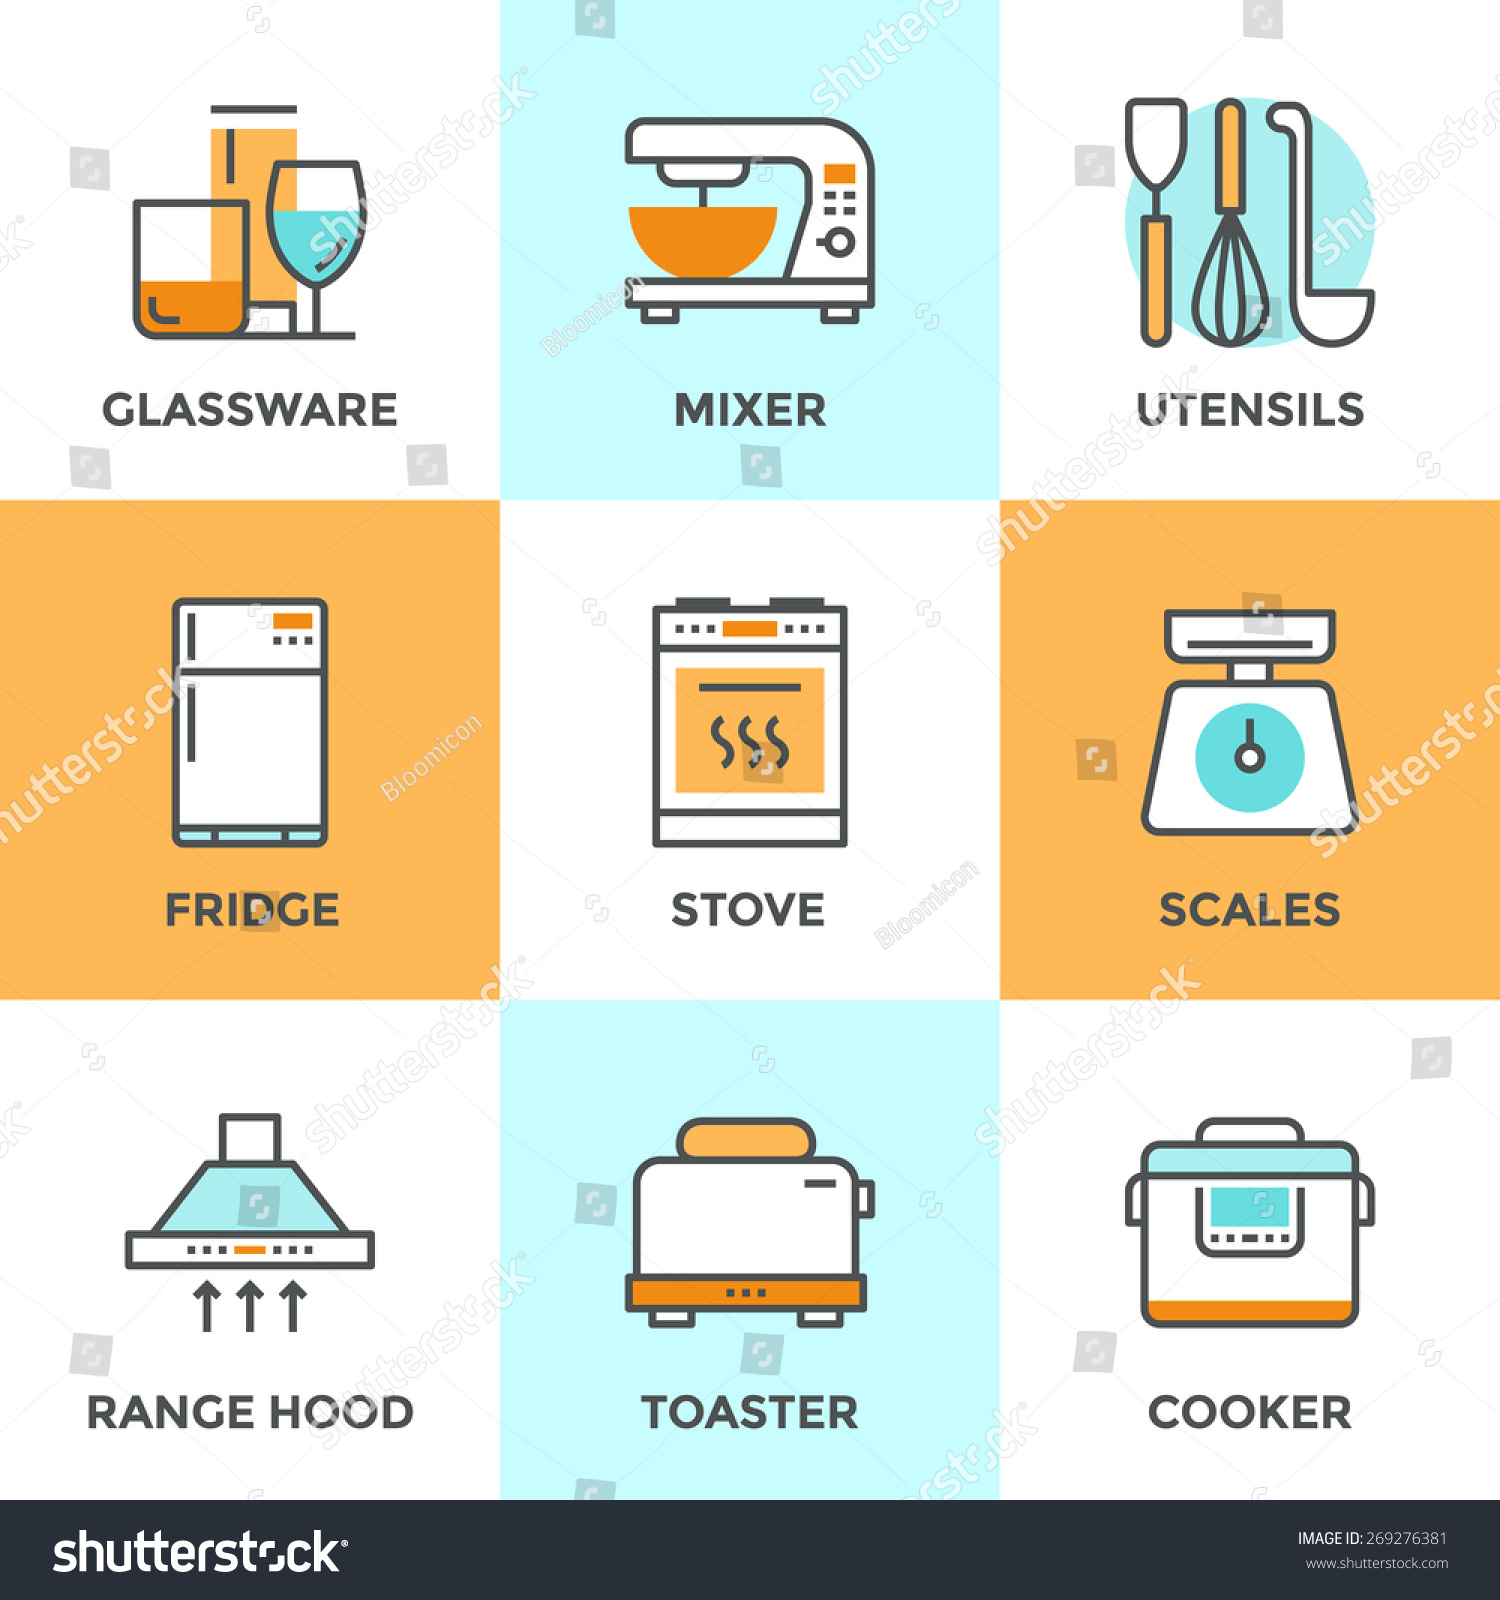 Uncategorized Kitchen Utensils And Appliances line icons set flat design elements stock vector 269276381 with of kitchen utensils glassware and home appliance